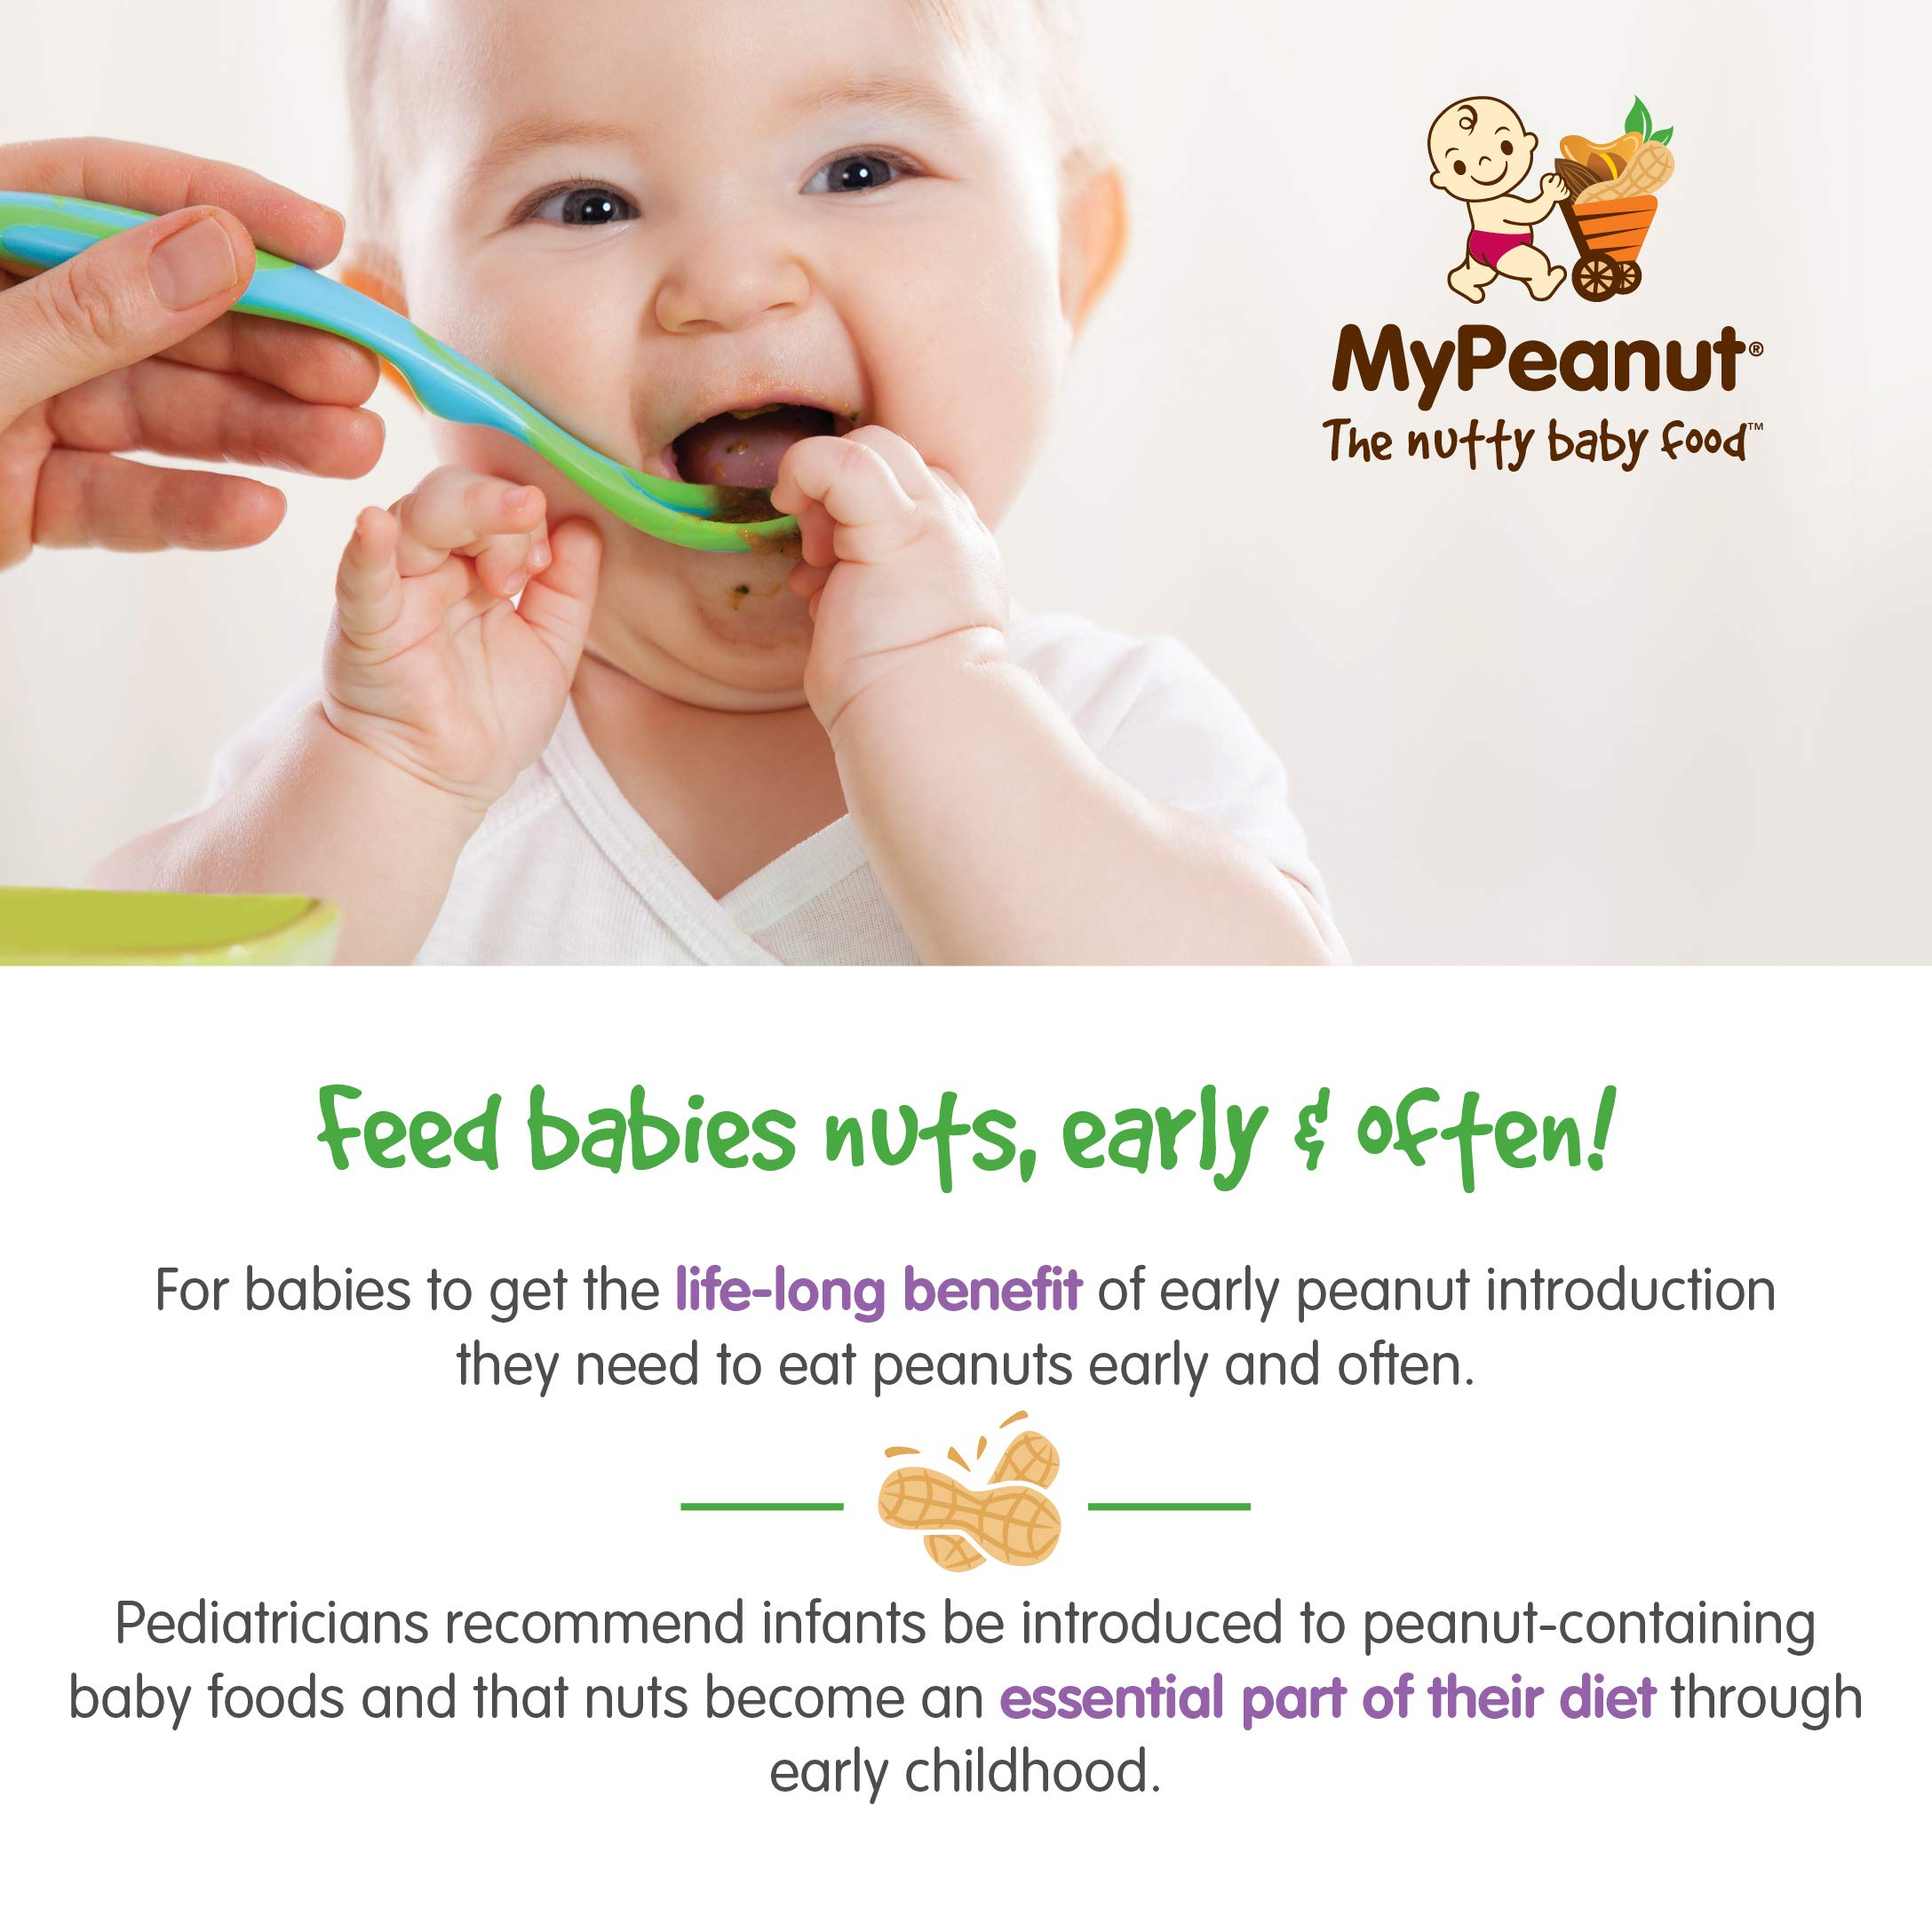 MyPeanut Baby Food, Organic Stage 1 Peanut and Apple Puree for Introducing and Feeding Babies and Toddlers Nuts, Non-GMO, BPA Free 3.5 oz Pouch, 18 Pack by MyPeanut (Image #4)